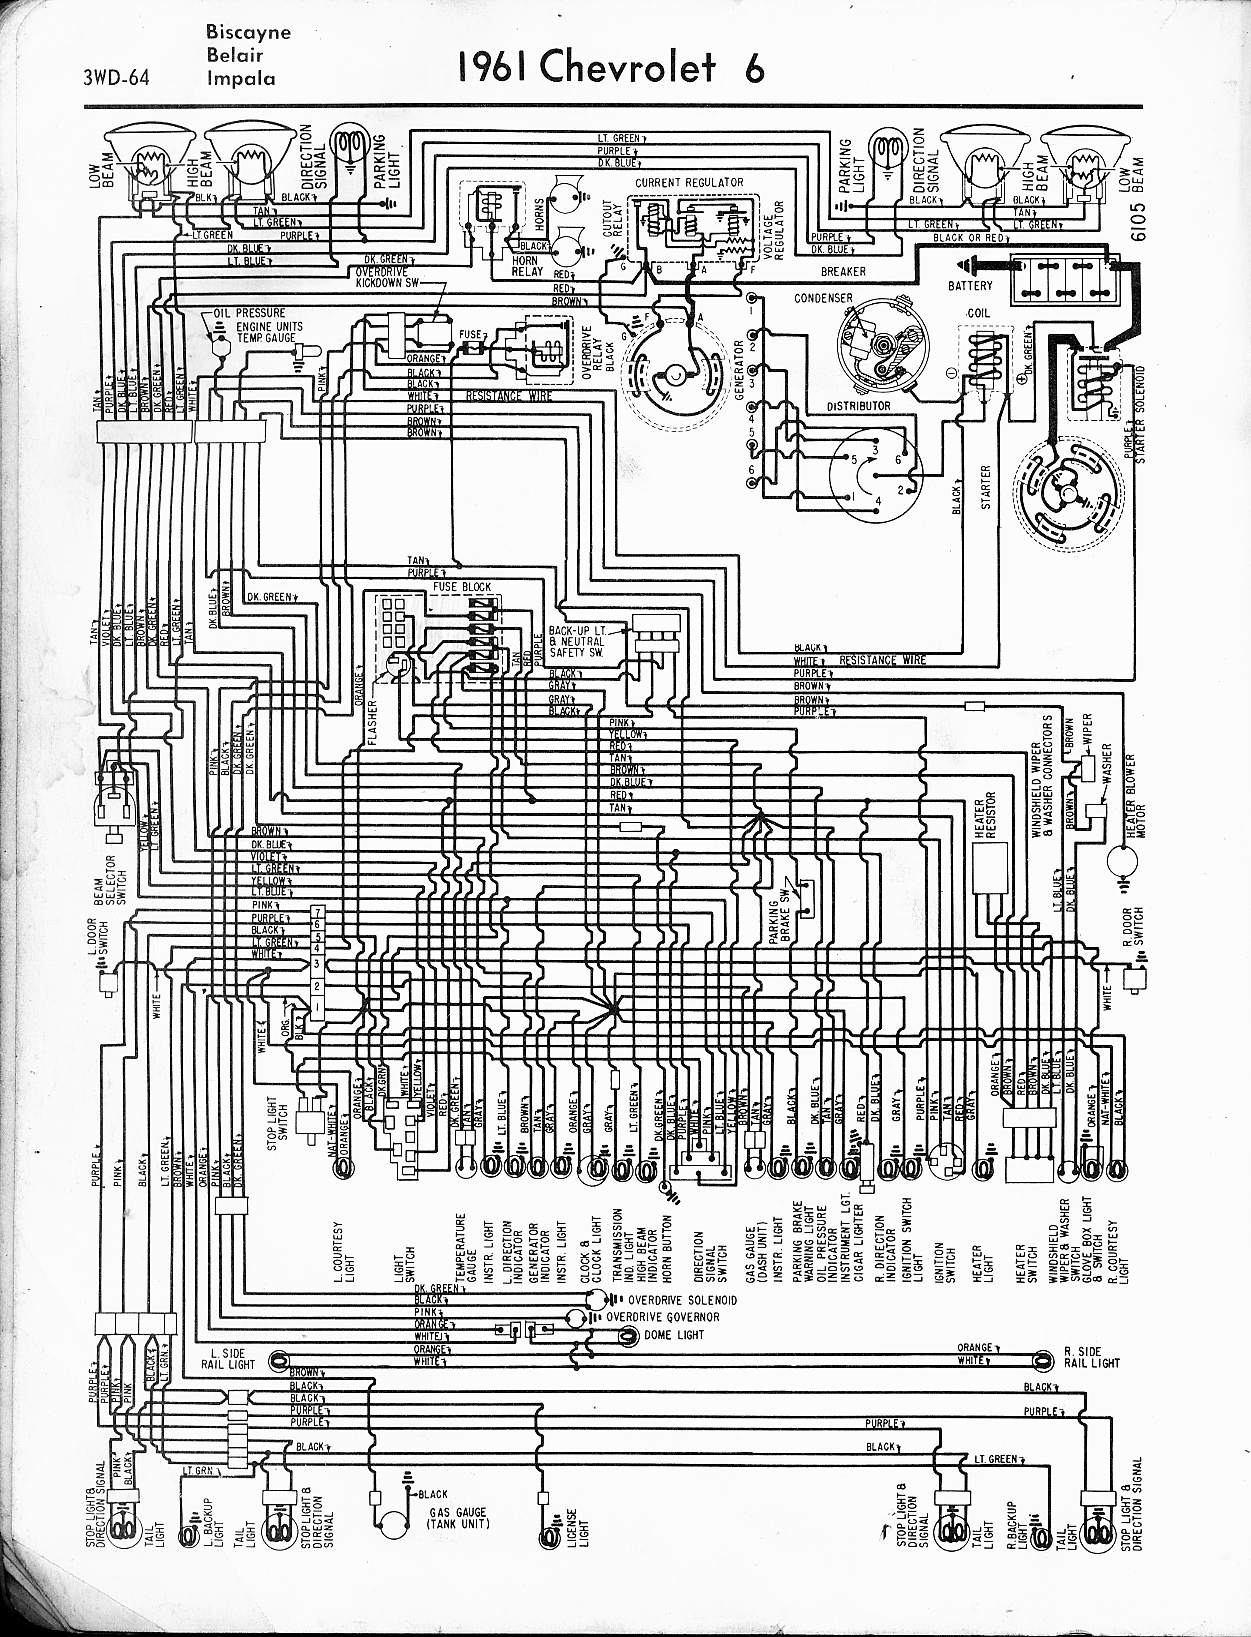 chevrolet alternator wiring diagram 2005 honda crv fuse box chevy starter truck underhood diagrams